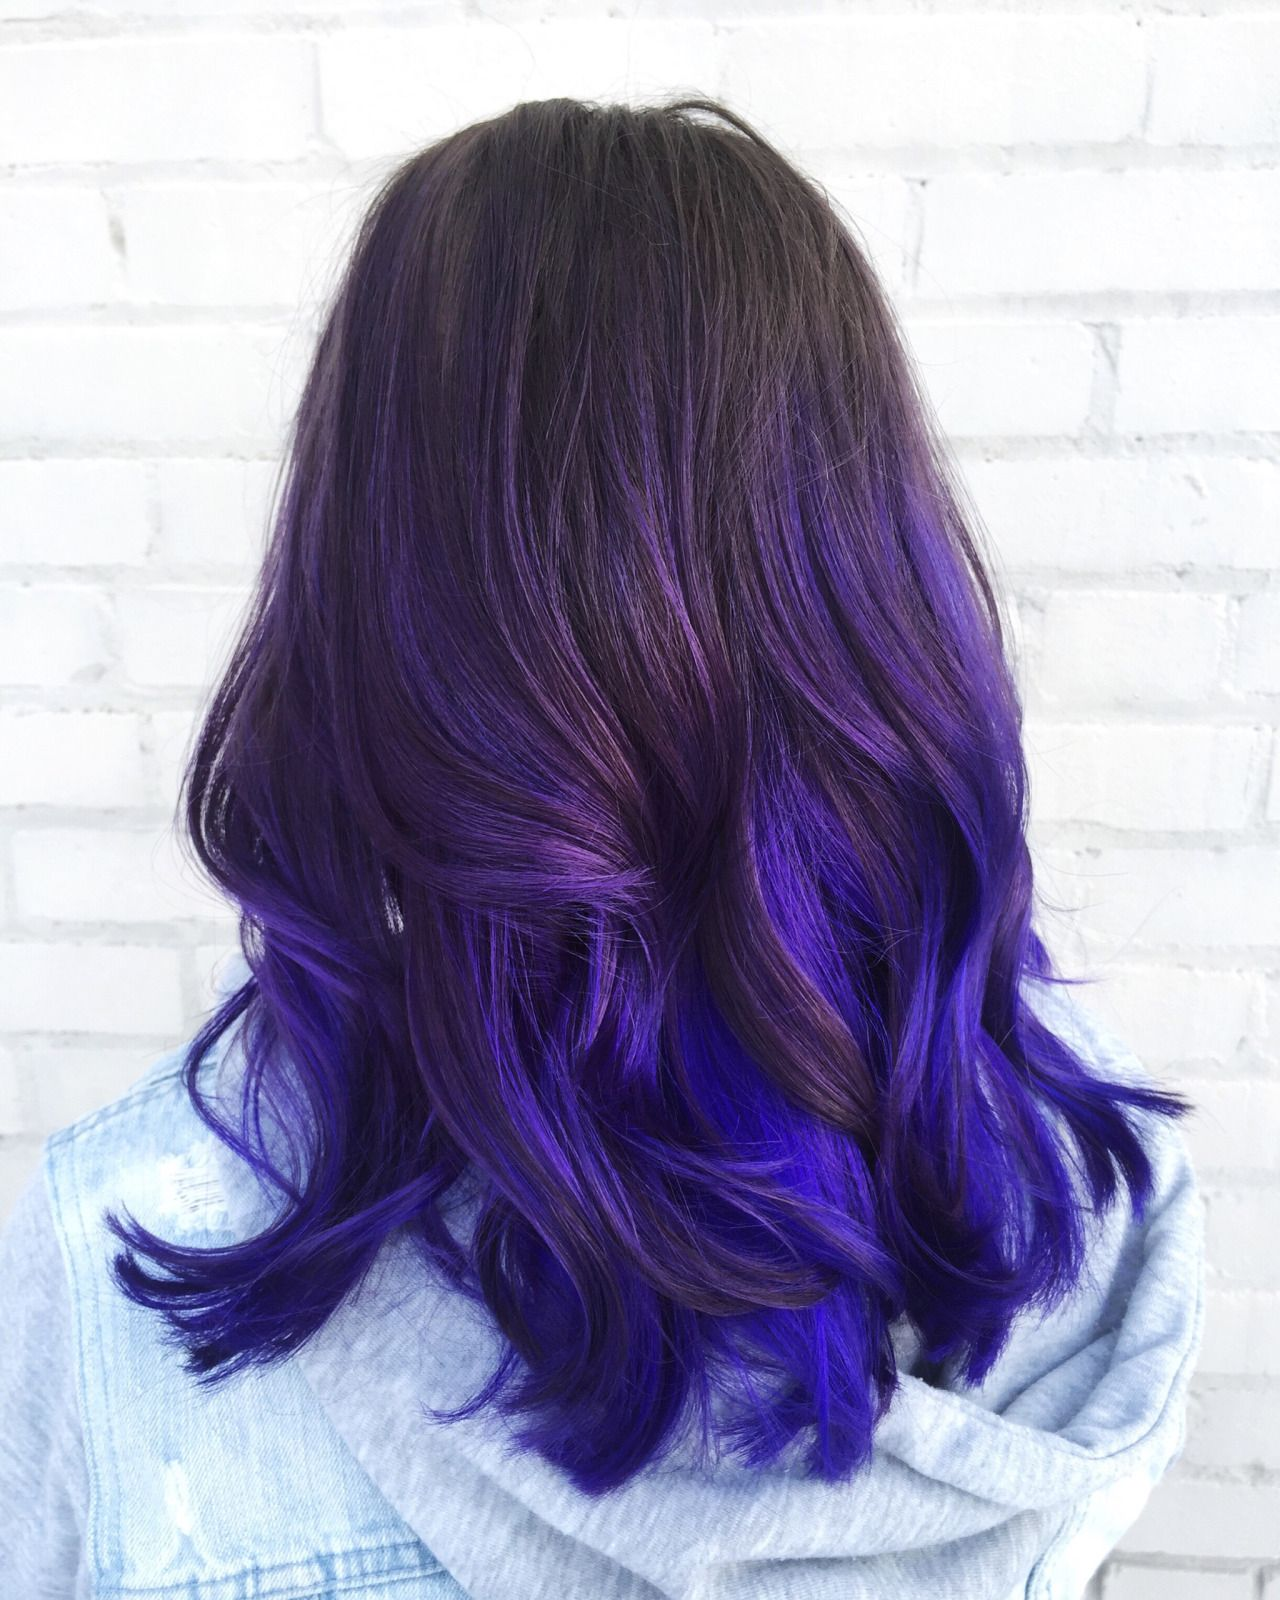 Pinterest Ashliwankhanobi Ombre Hair Hair Color Purple